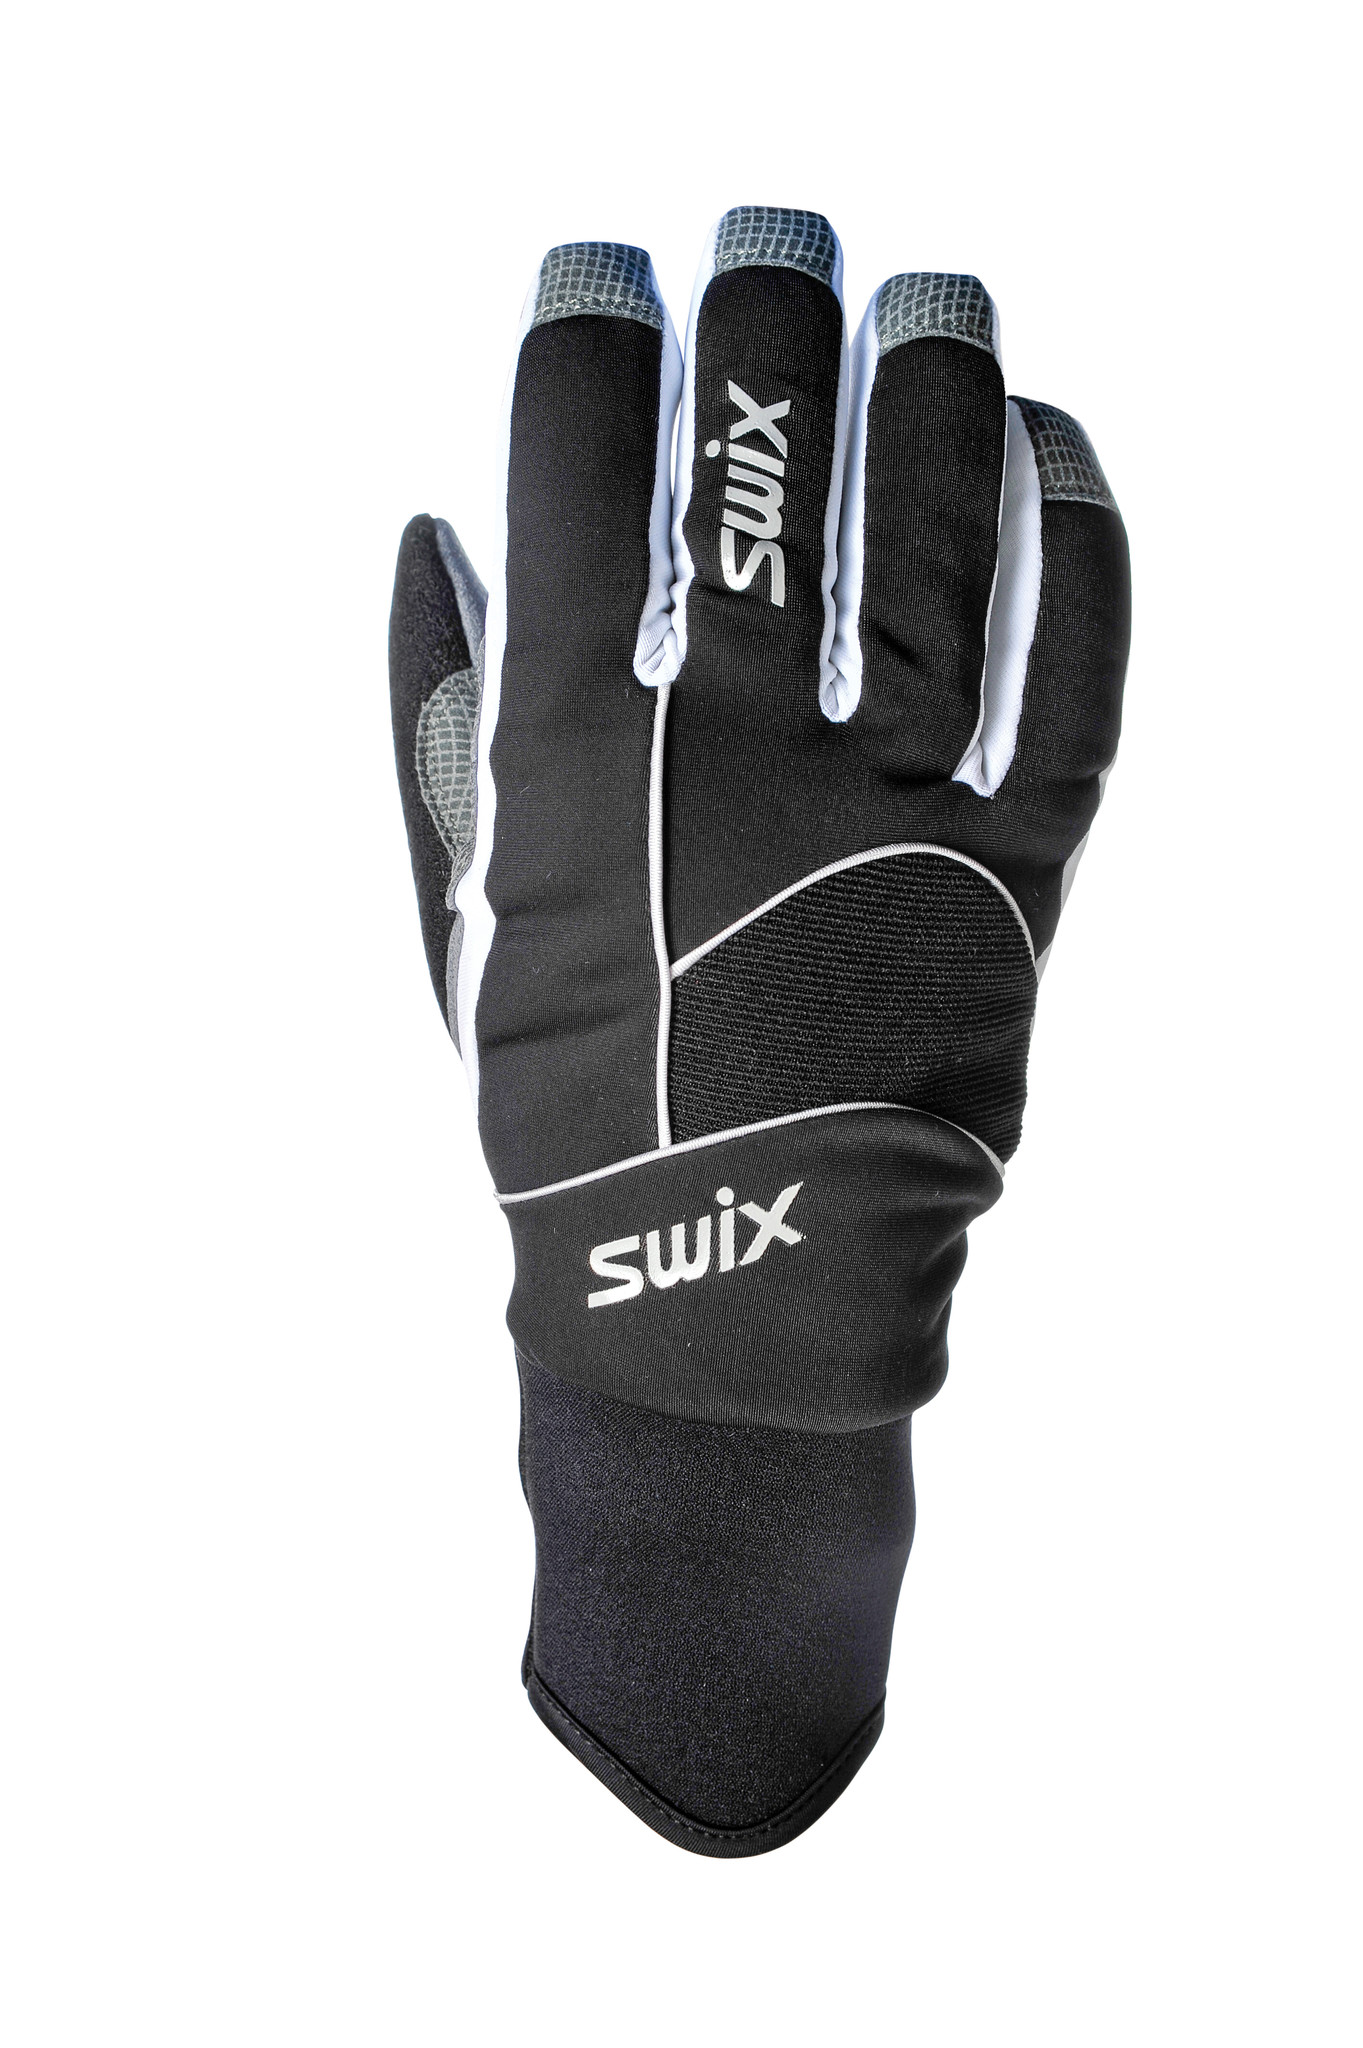 Swix Women's Star XC 2.0 Glove